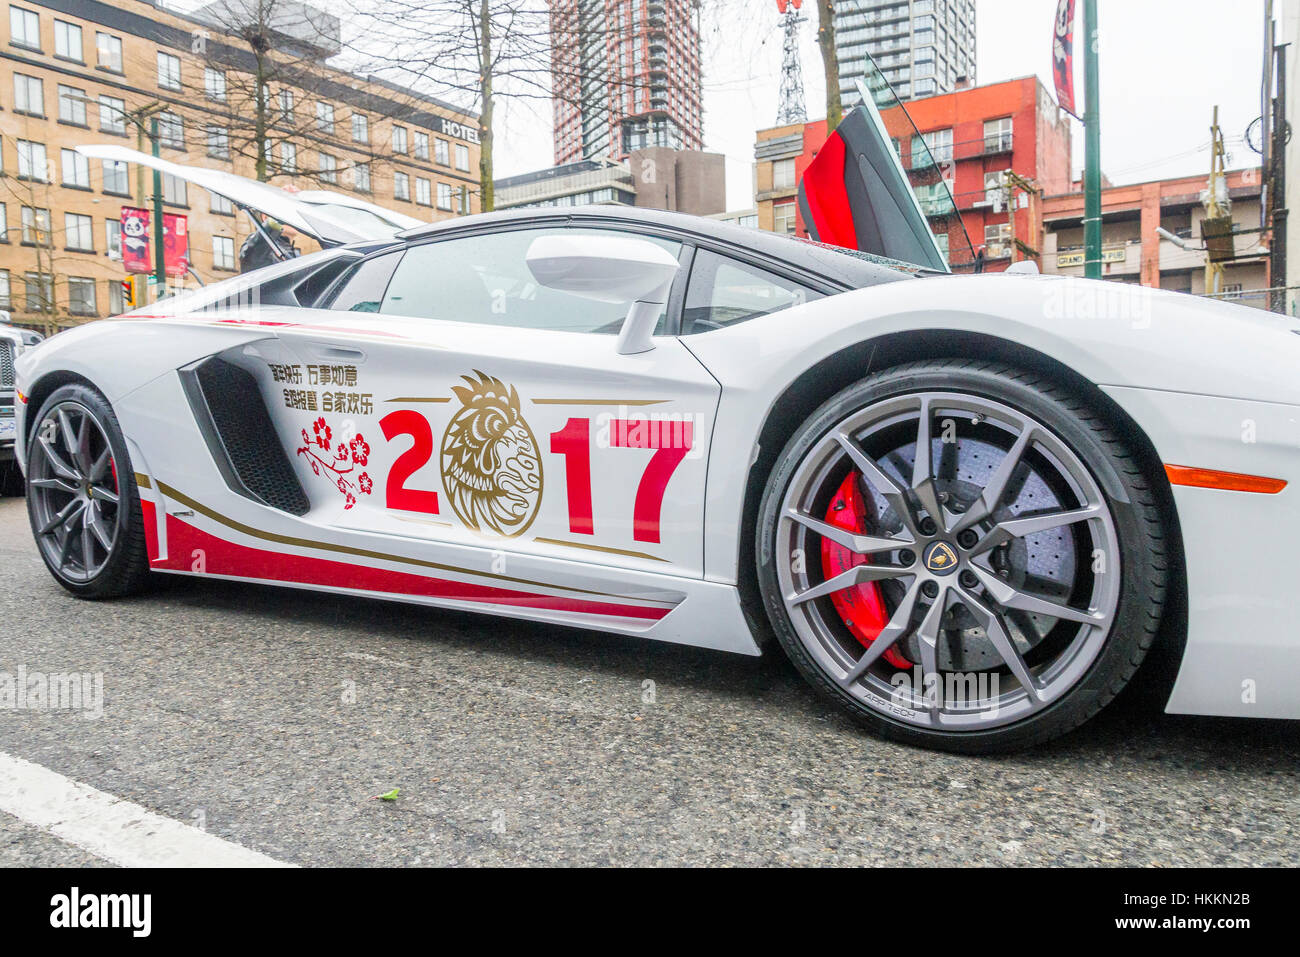 Remarkable, very amateur car racing in vancouver are not